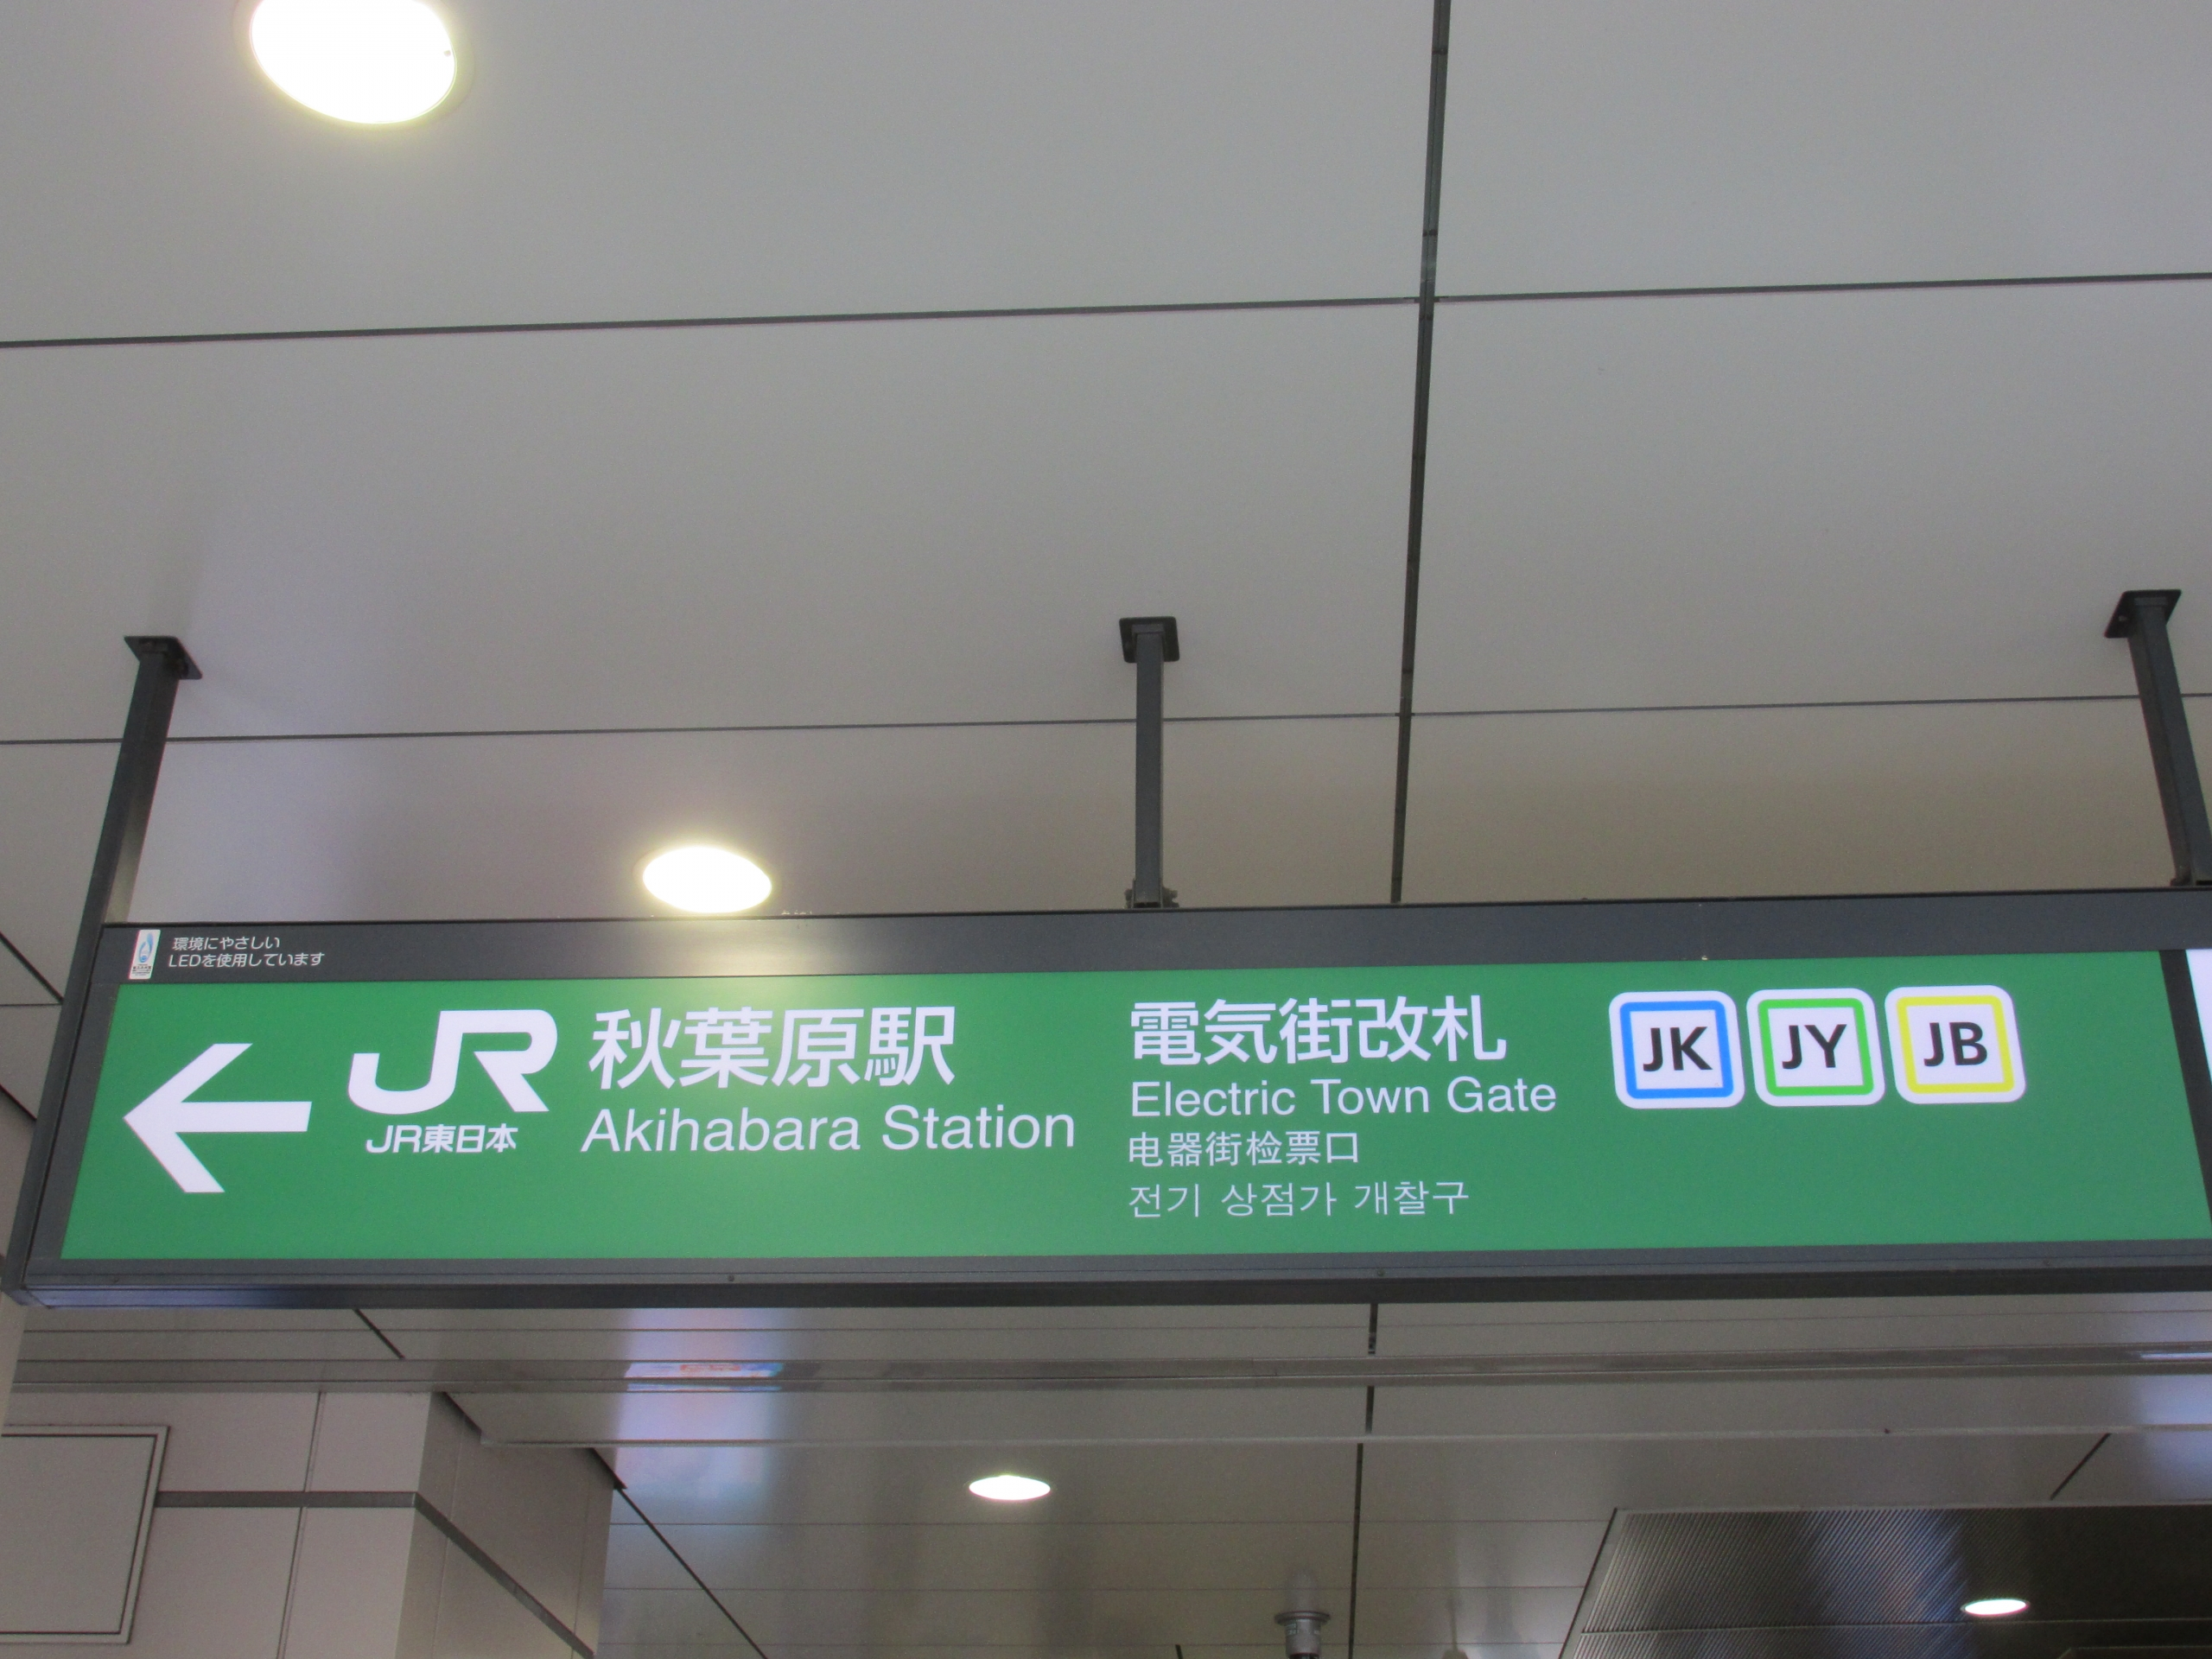 JR Pass Metro Station